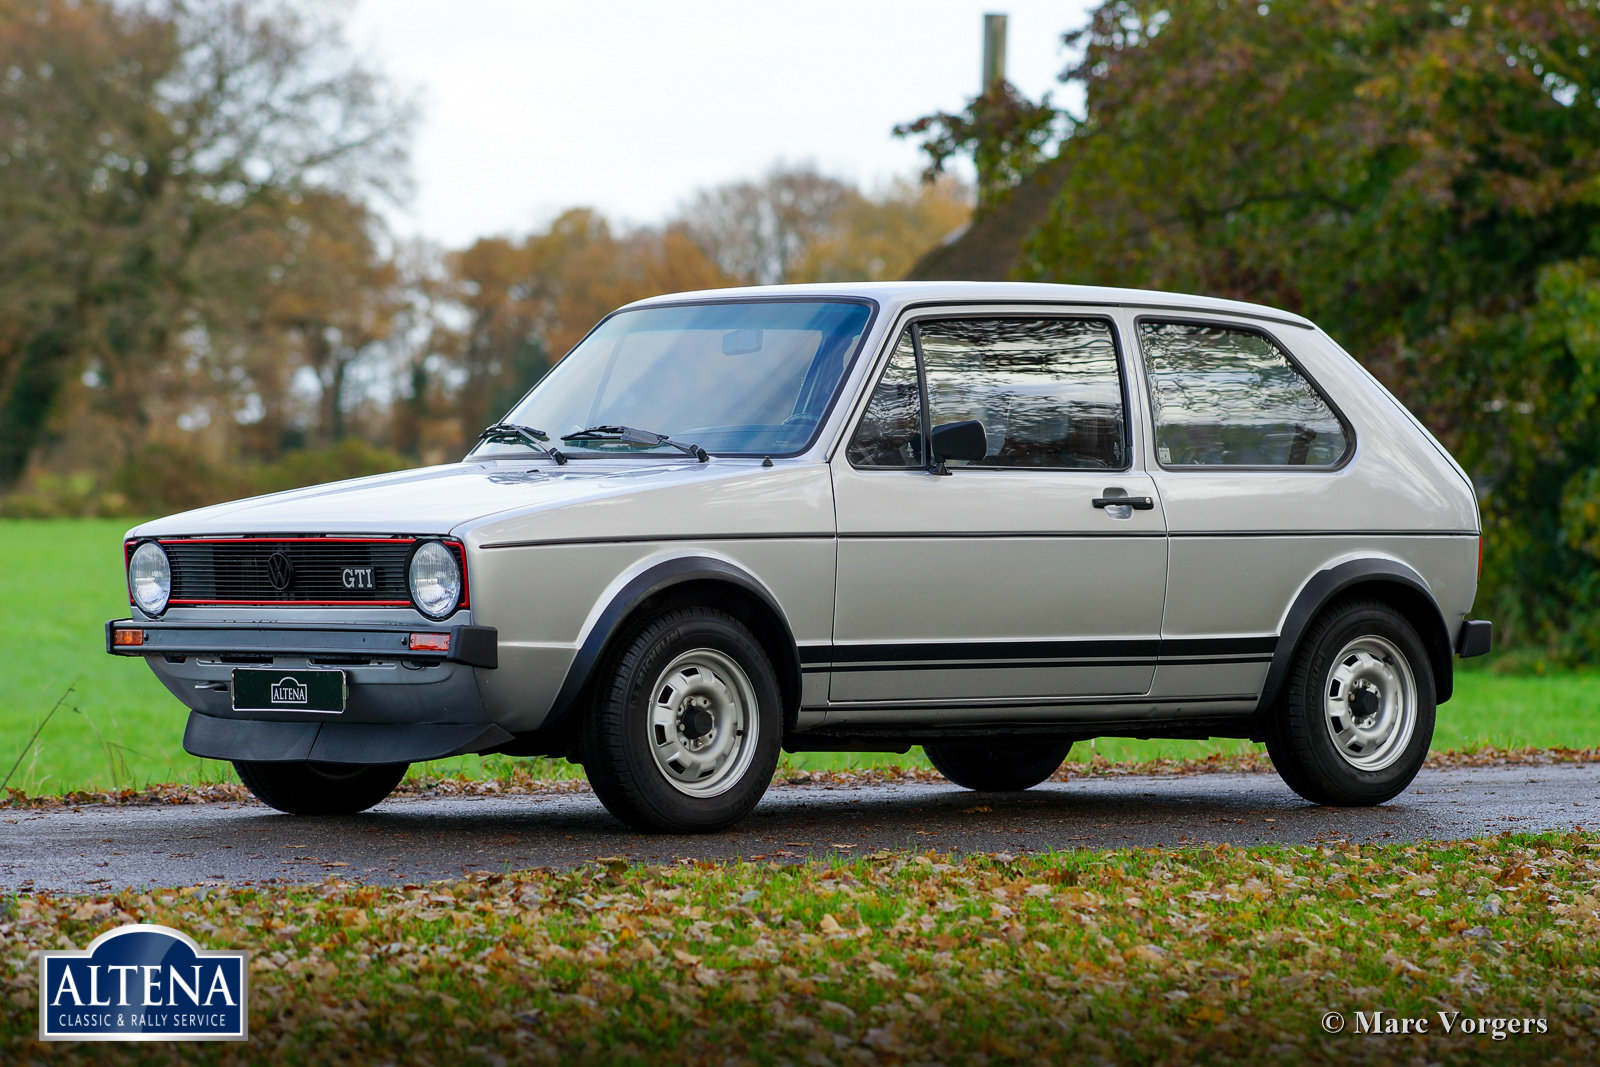 Volkswagen Golf 1 GTI, 1979 For Sale (picture 1 of 6)